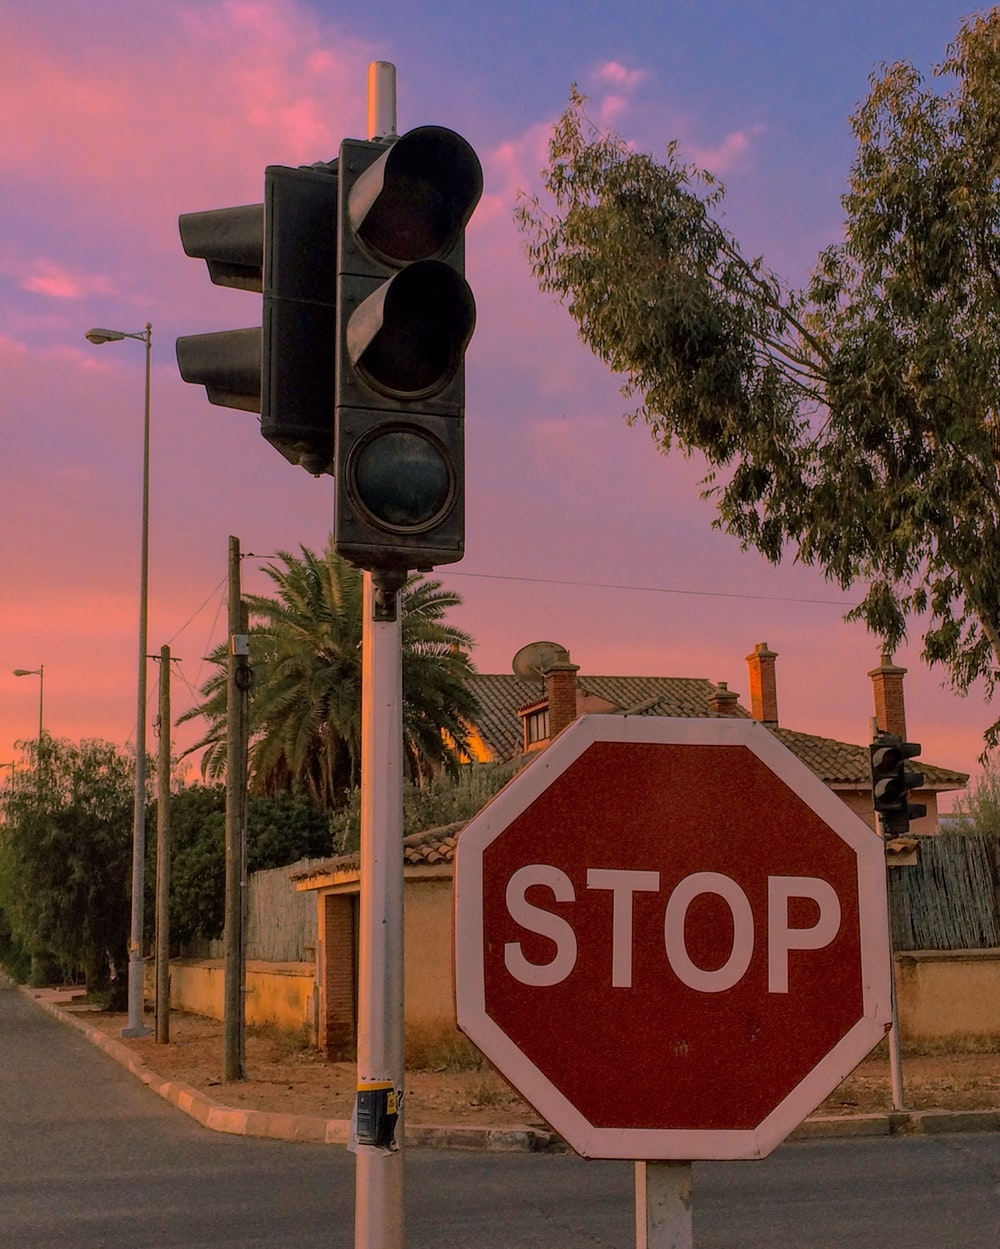 red and white Stop signage and black traffic light